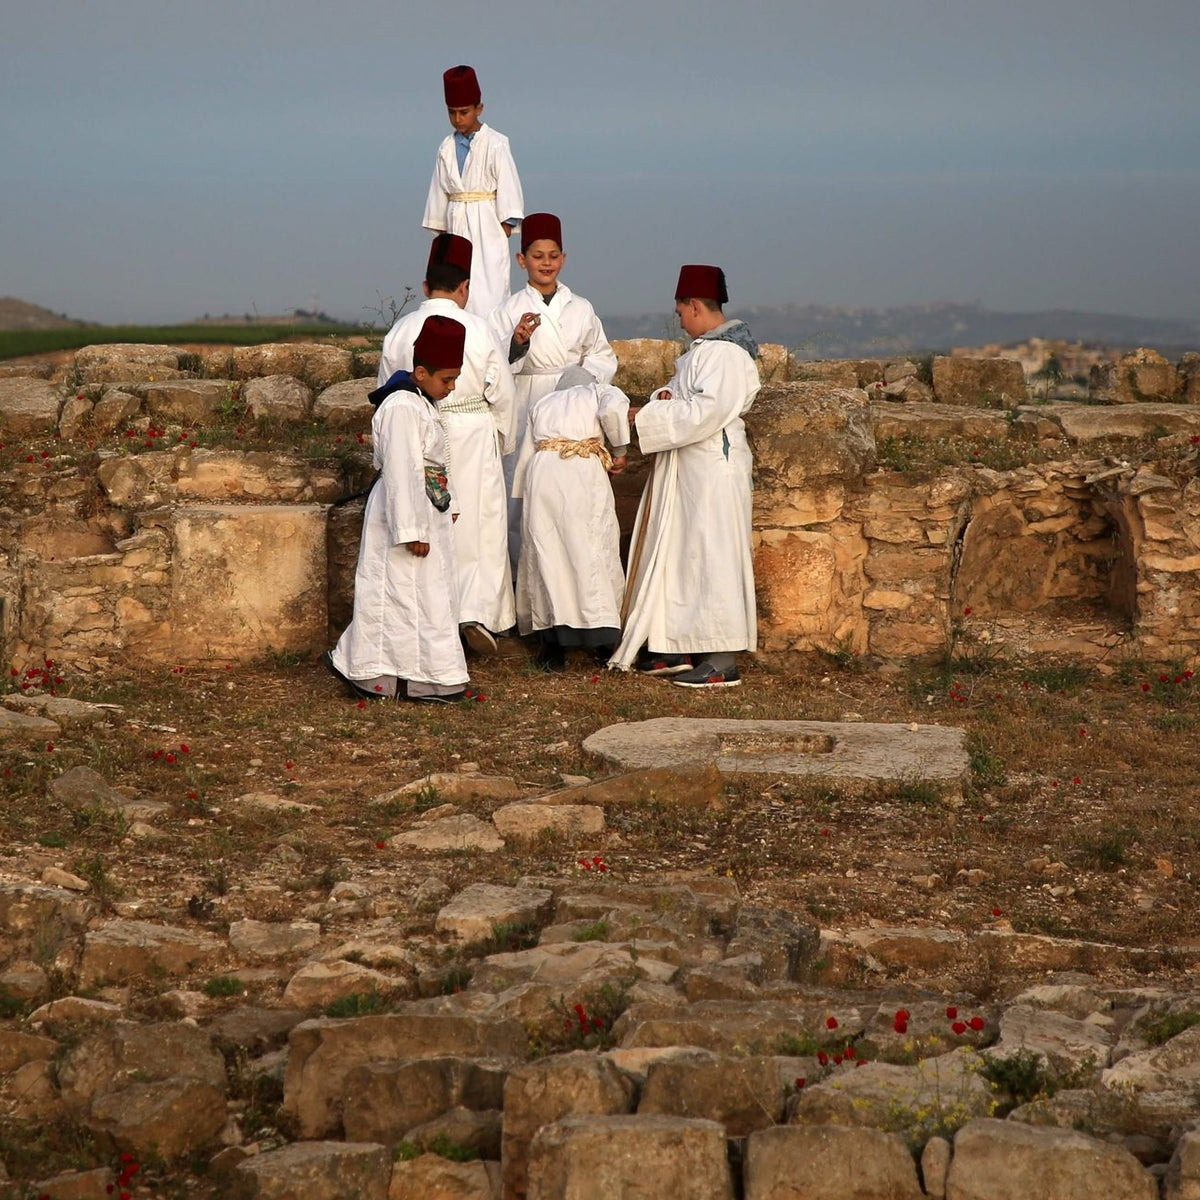 Young Samaritan worshippers resting during a Passover ceremony at Mount Gerizim, May 6, 2018.